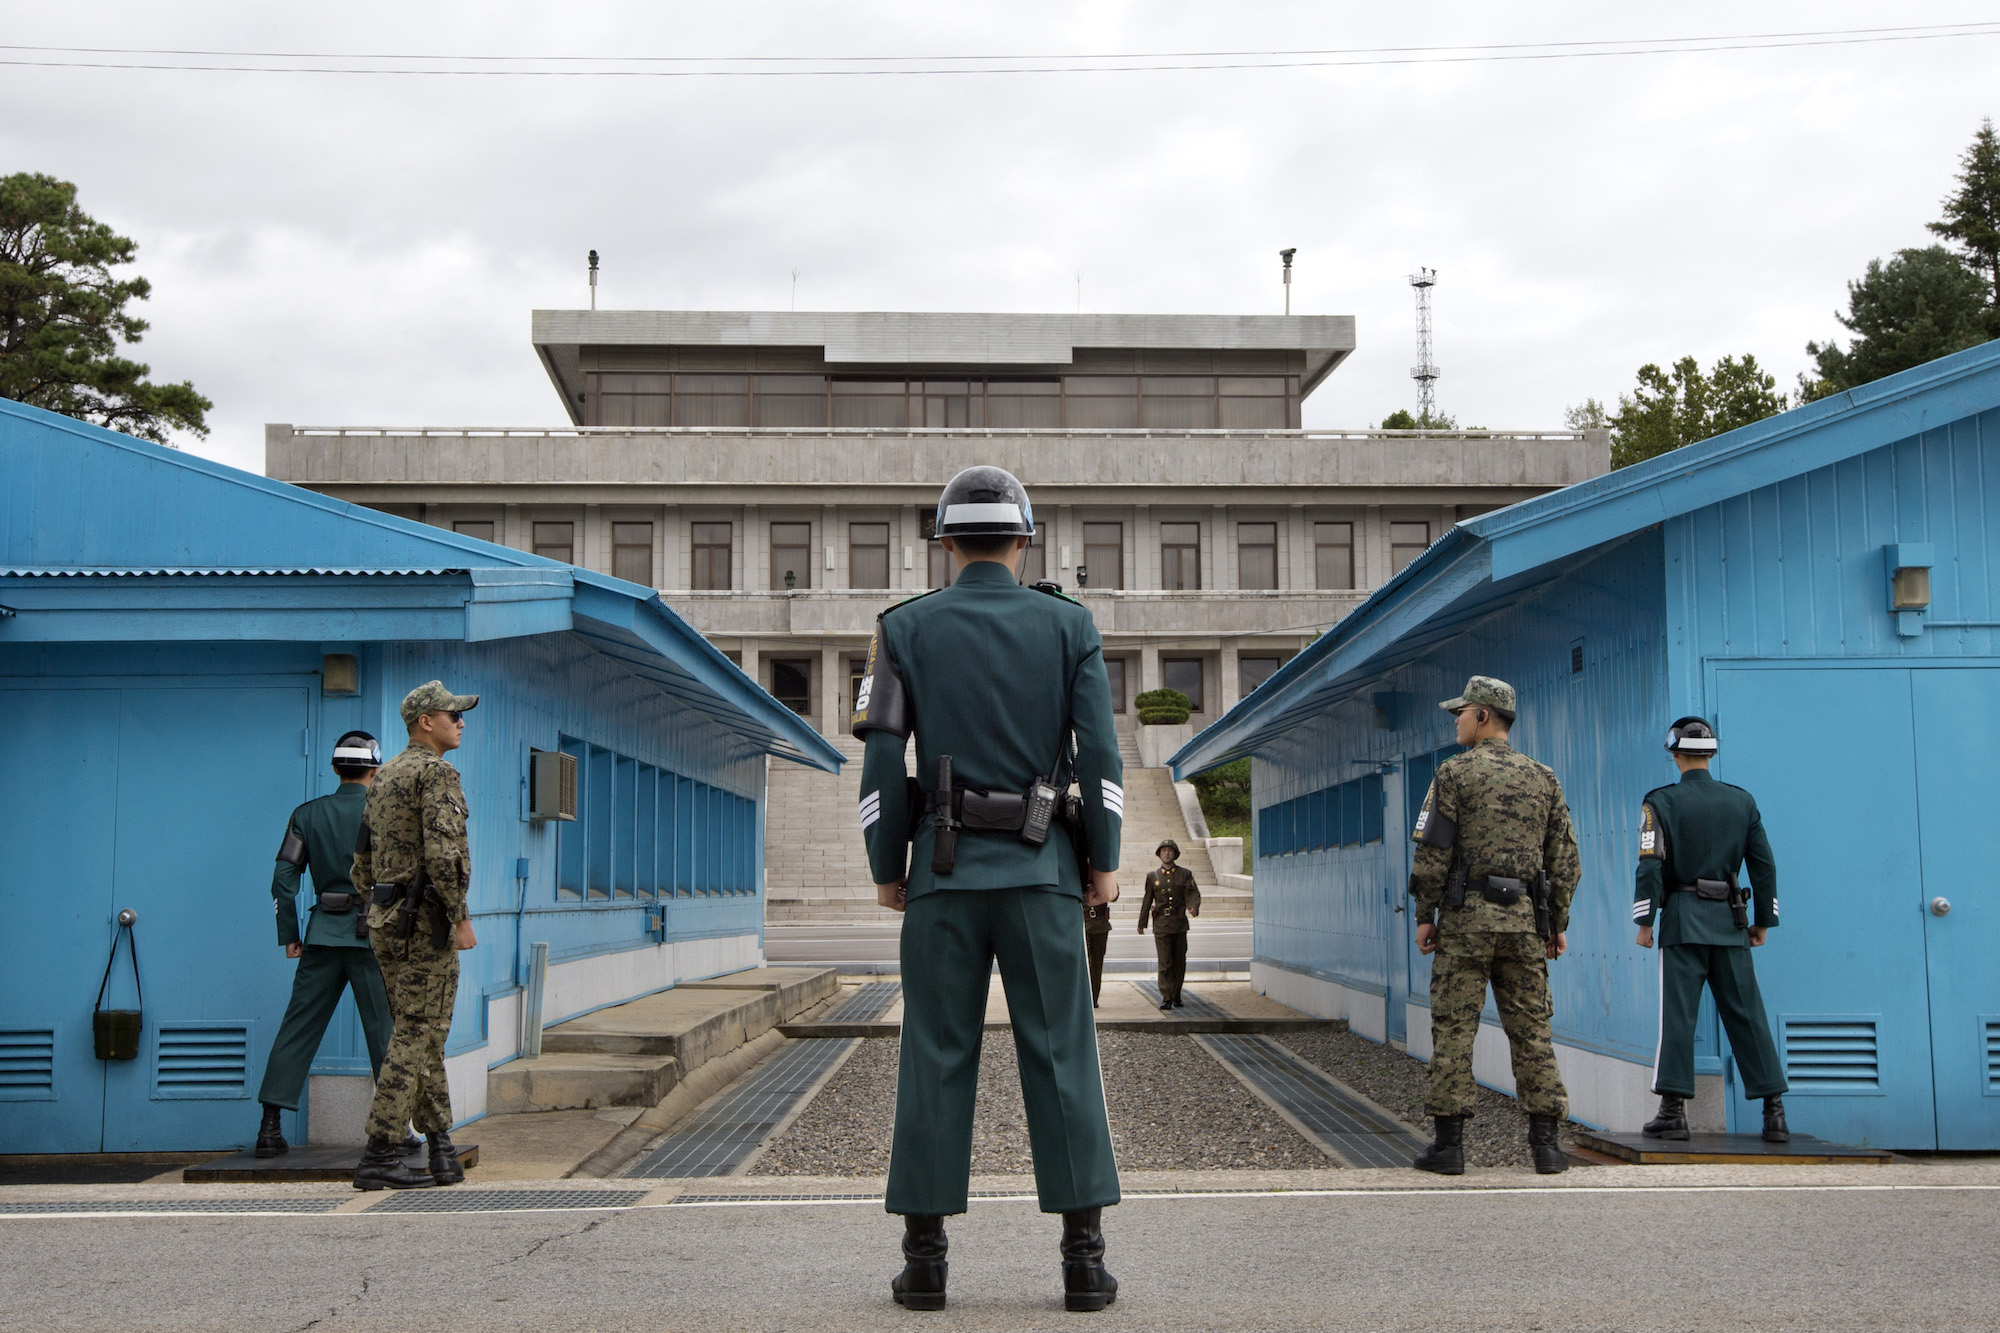 South Korean soldiers look toward the North Korean side as a North Korean solder approaches the UN truce village building that sits on the border of the Demilitarized Zone (DMZ), the military border separating the two Koreas, during the visit of U.S. Secretary of Defense Chuck Hagel to the DMZ in Panmunjom, South Korea, on Monday, Sept. 30, 2013. (AP Photo/Jacquelyn Martin, Pool)